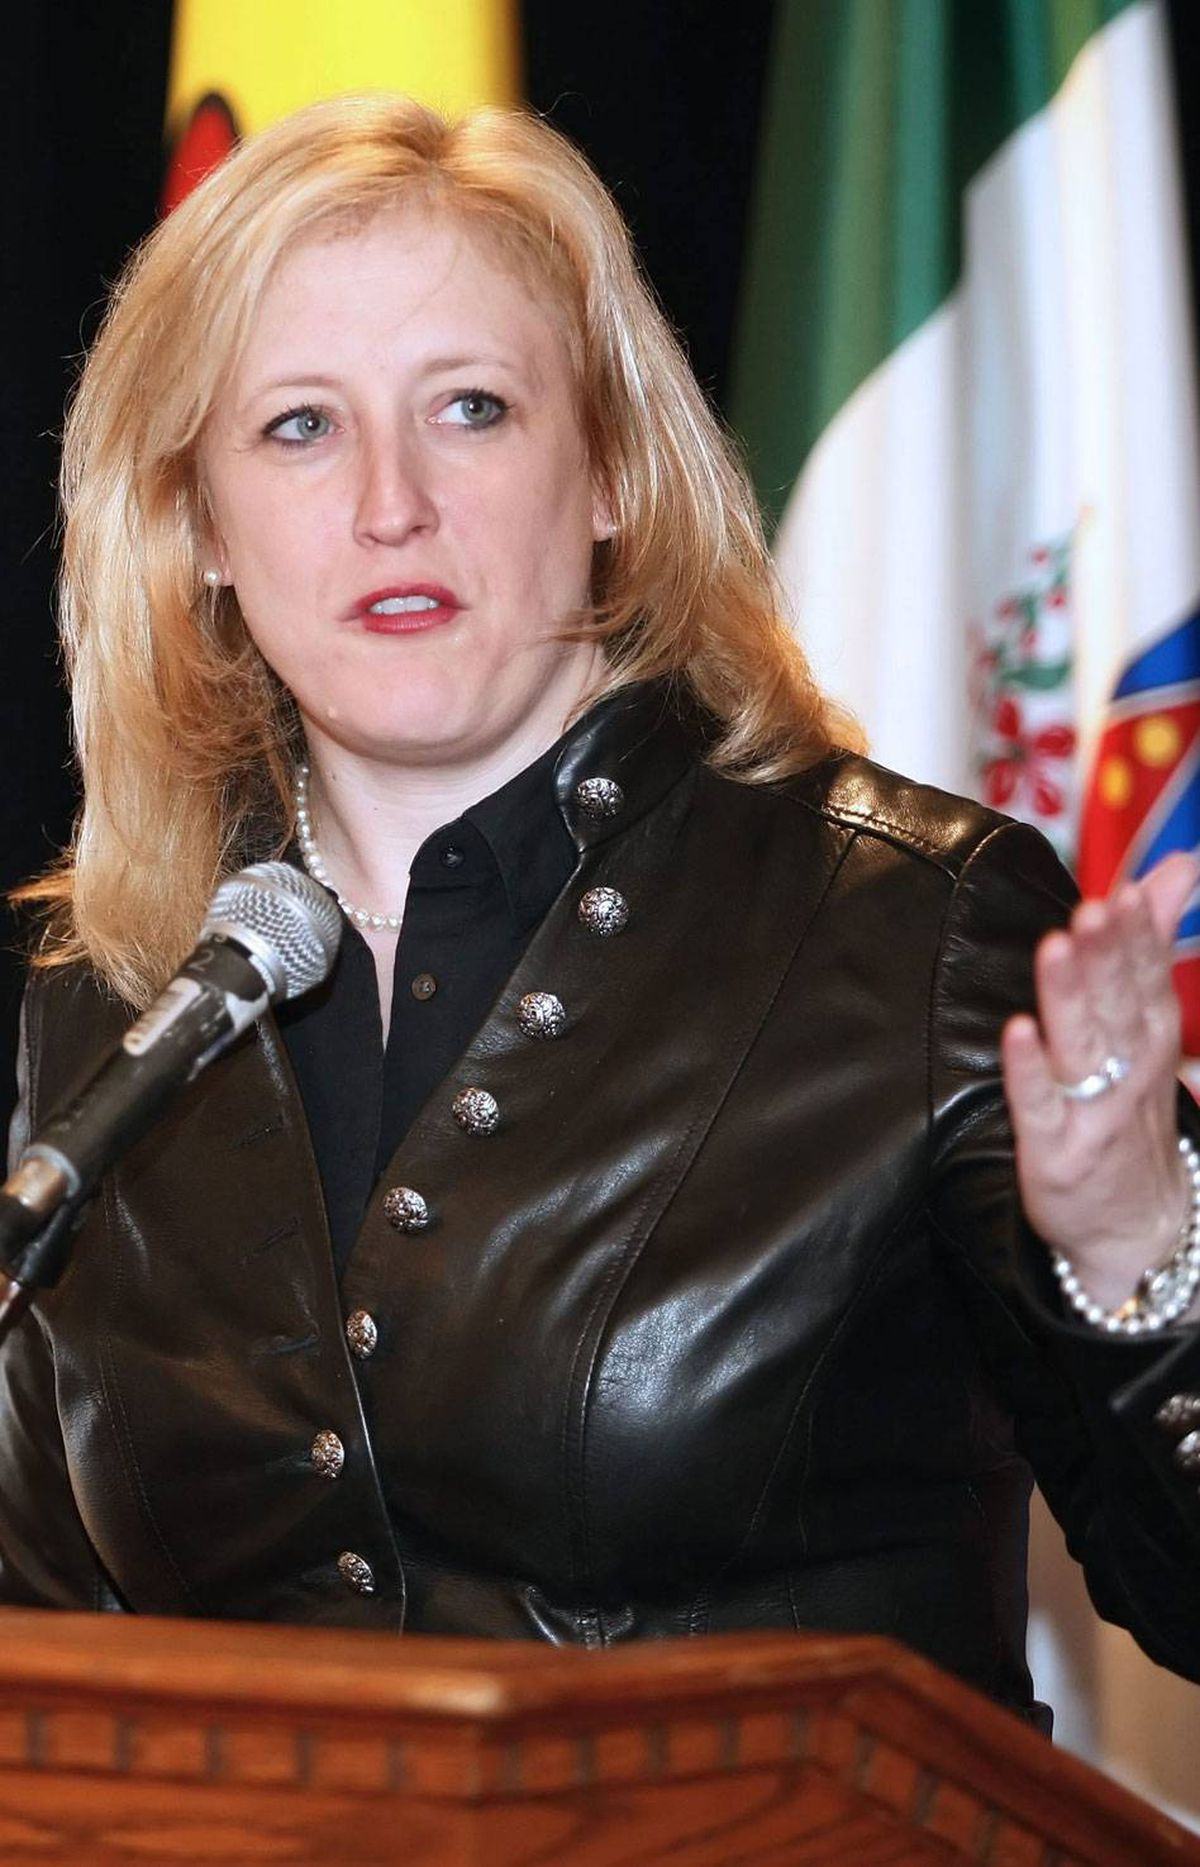 LISA RAITT, LABOUR After a controversy-filled run at Natural Resources, Lisa Raitt's 2010 demotion to the much smaller Labour portfolio was seen as temporary. After Wednesday's shuffle, she's still there. Ms. Raitt arrived in Ottawa as a rising star but now she is one of several Toronto-area Conservatives with solid backgrounds who could move up in the future.